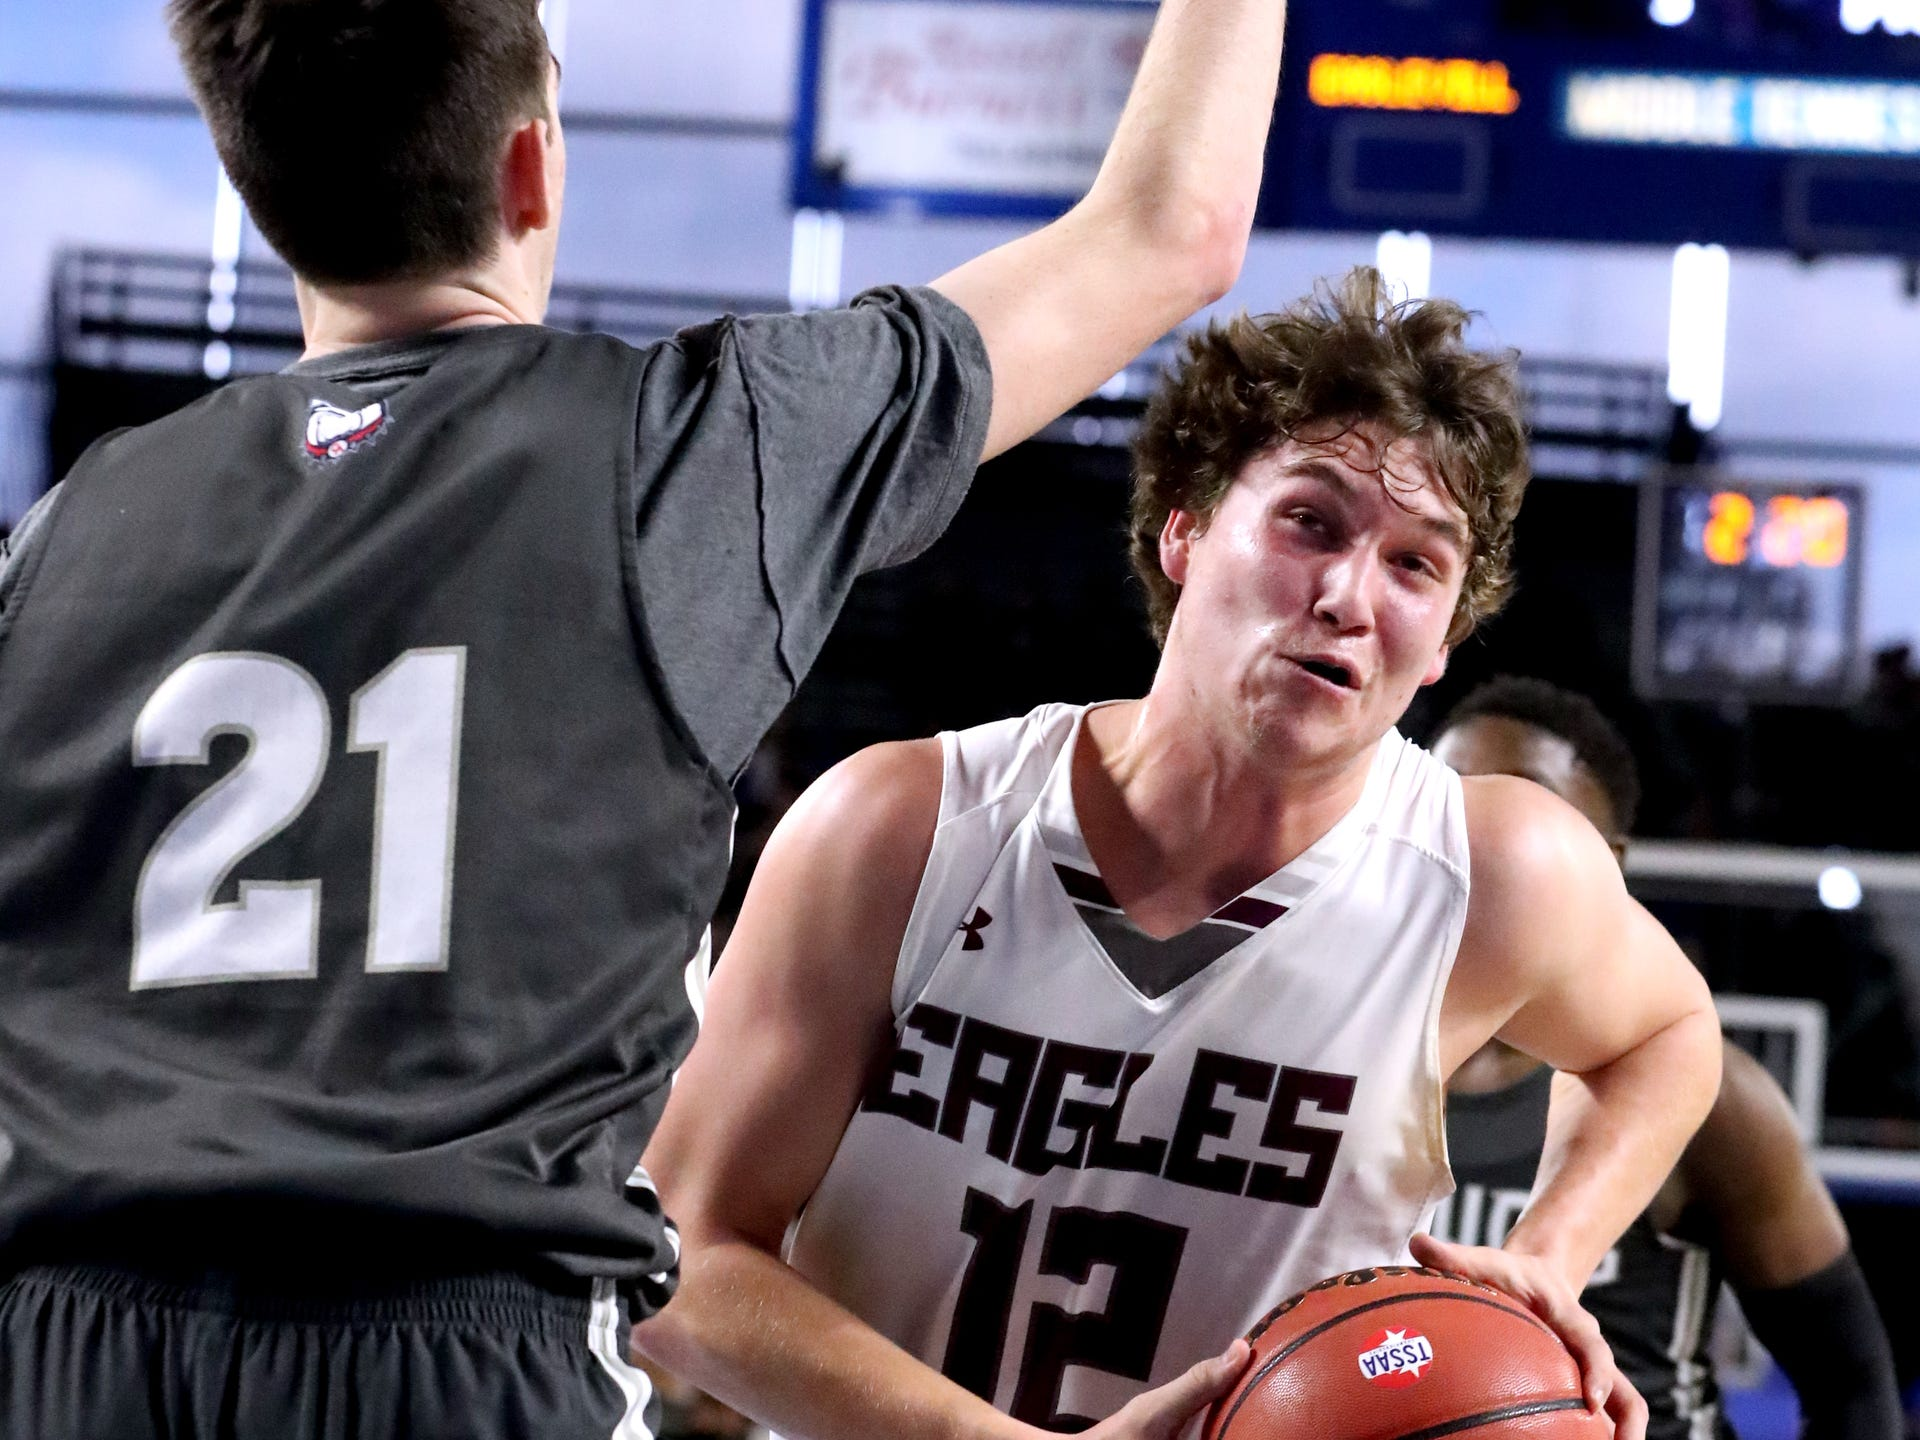 Eagleville's Ethan Cobb (12) drives to the basket as Columbia Academy's Eli Hyle (21) guards him during the semifinal round of the TSSAA Class A Boys State Tournament, on Thursday, March 15, 2019, at Murphy Center in Murfreesboro, Tenn.